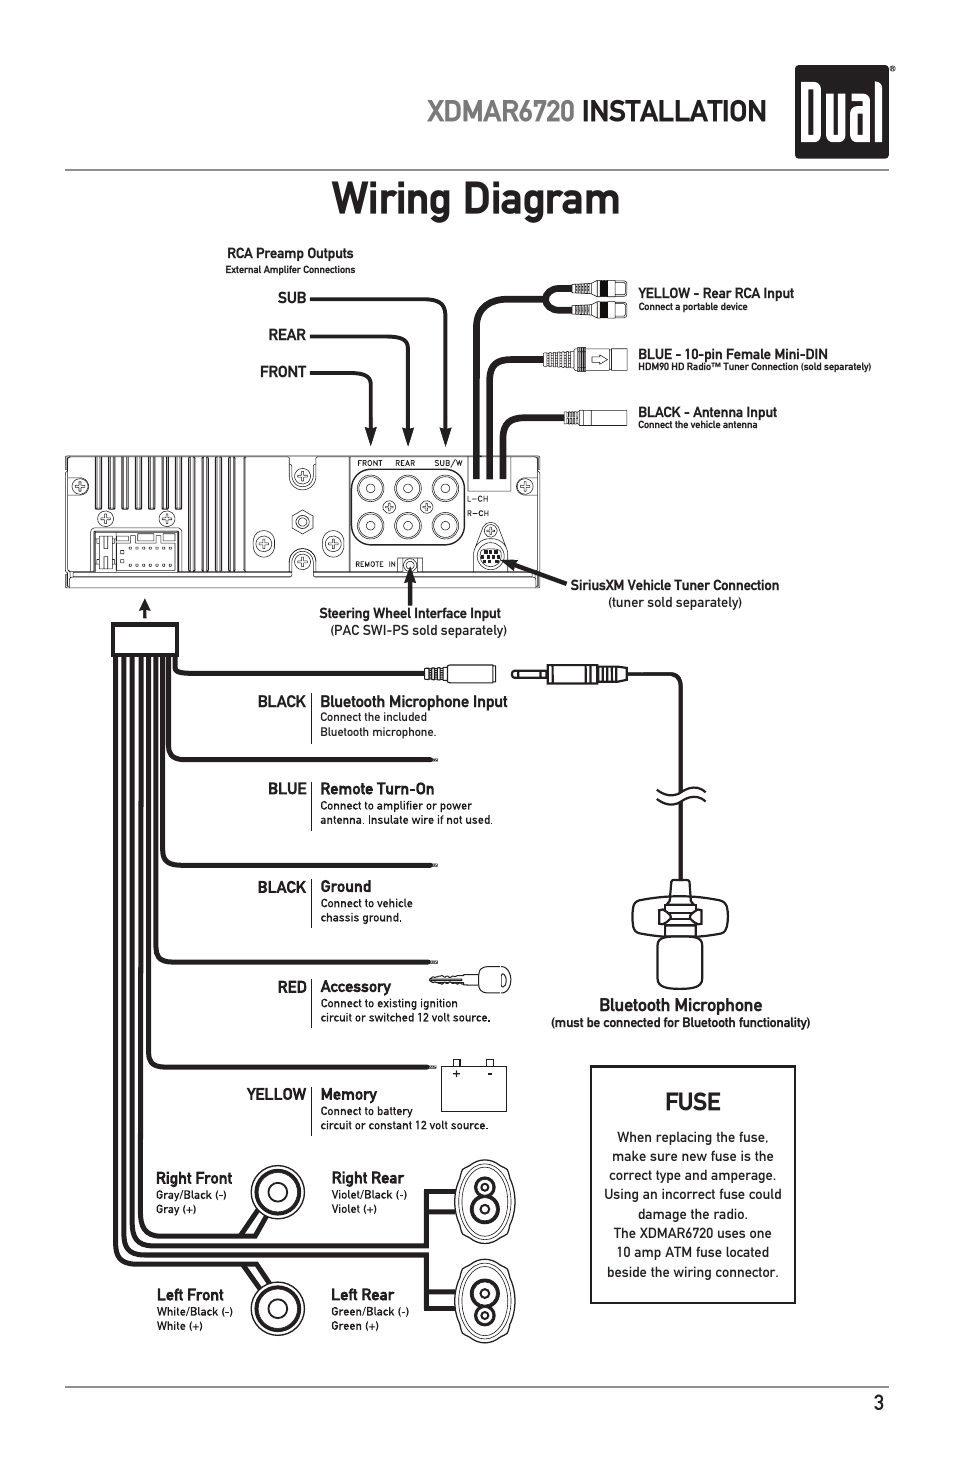 Xdmar wiring diagram images